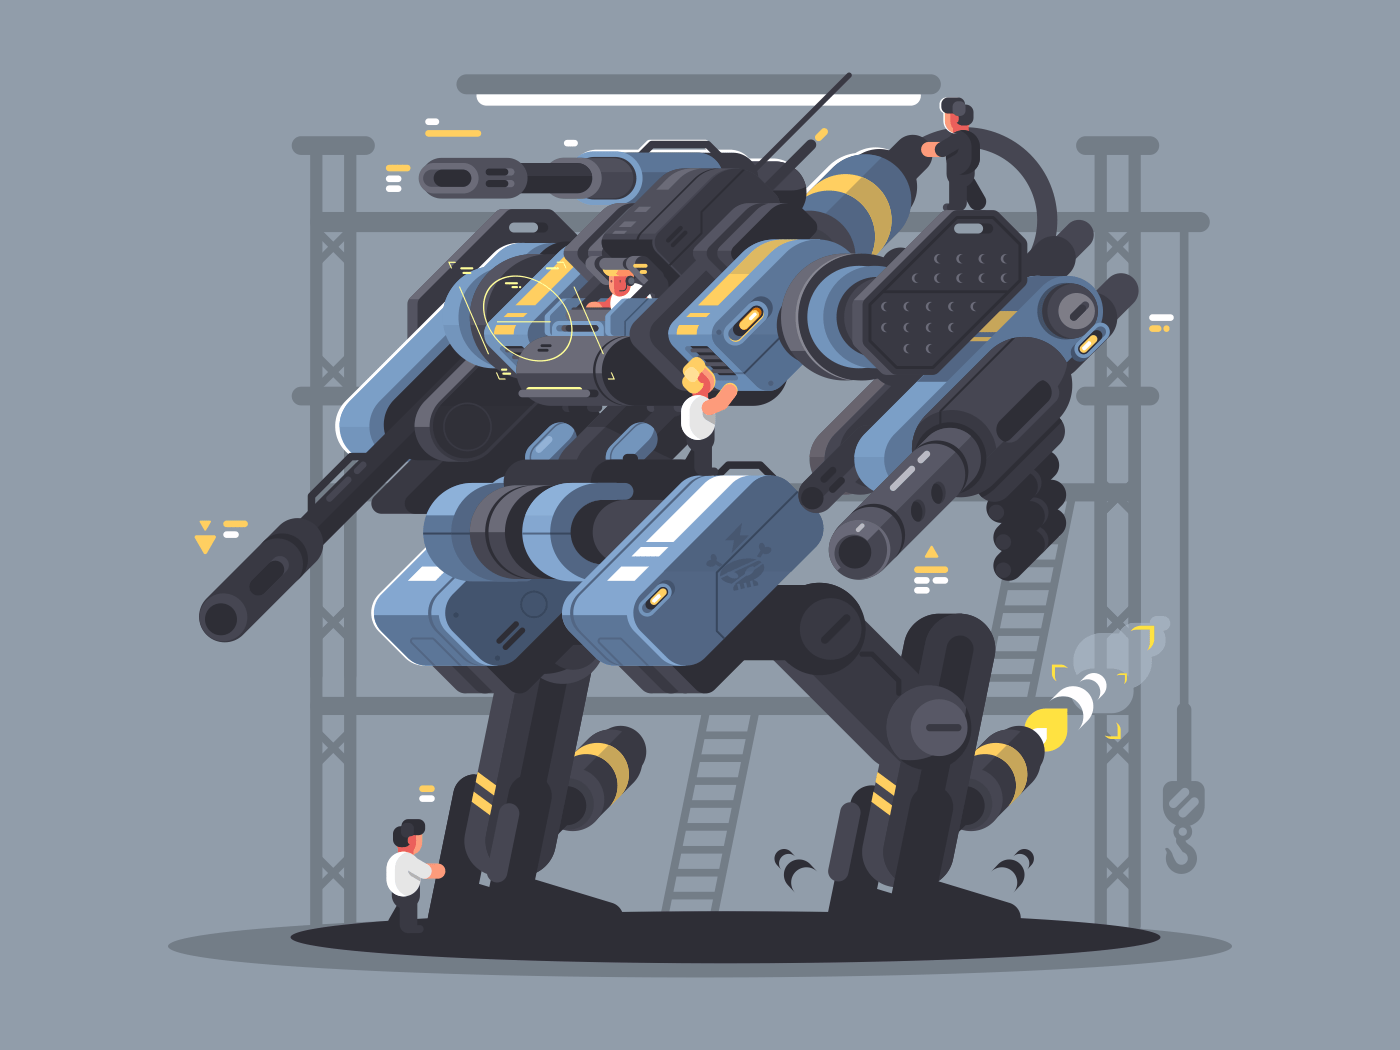 Military exoskeleton controlled by man. Modern technology of future. Vector illustration